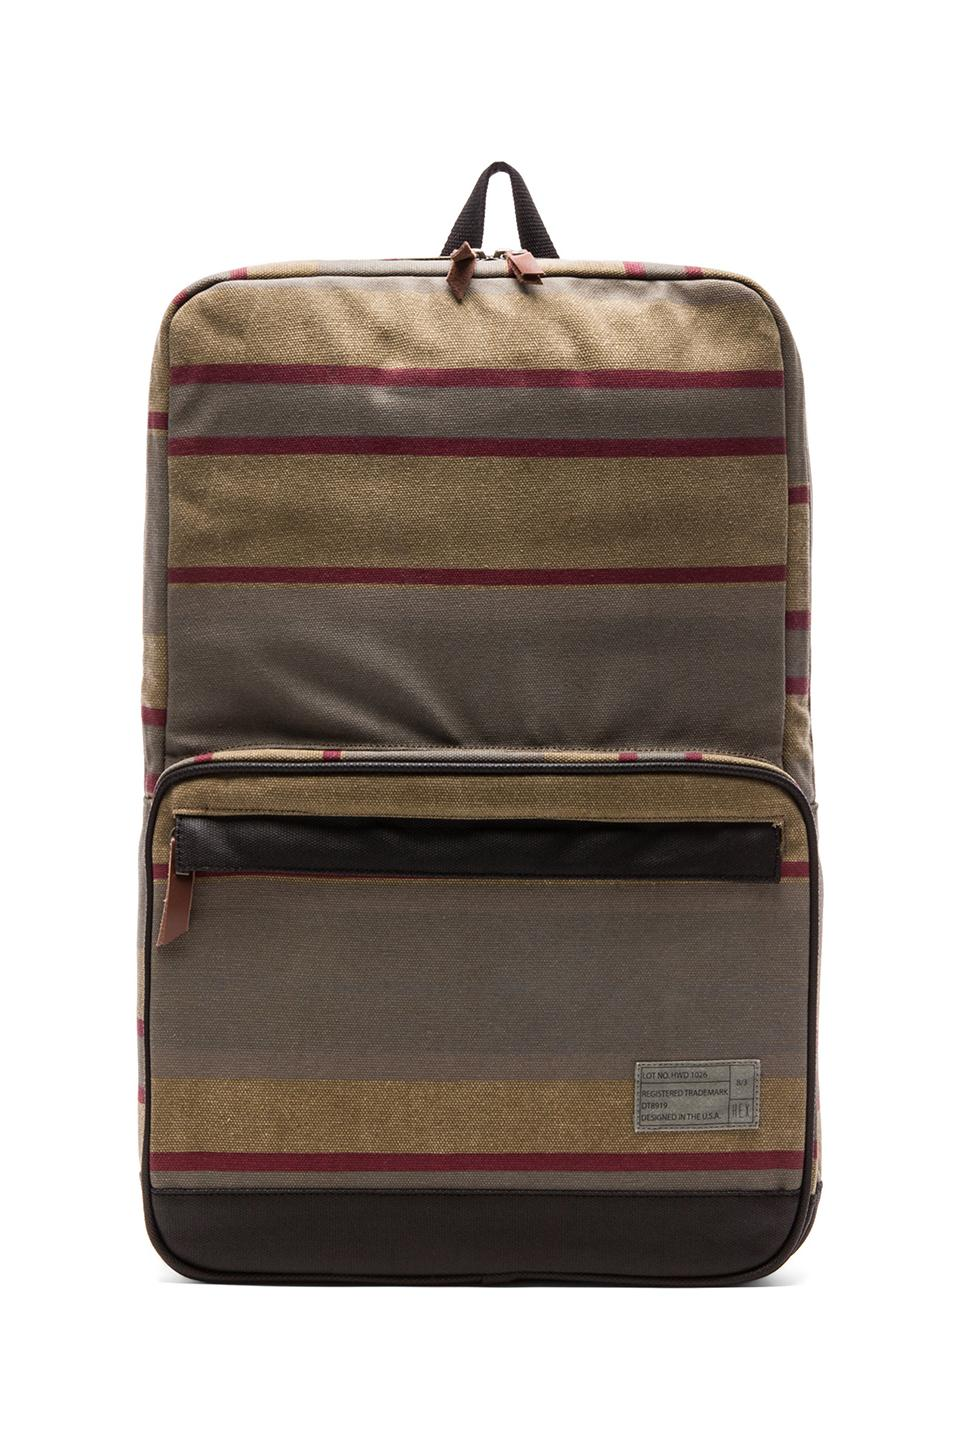 HEX Origin Backpack in Khaki Stripe